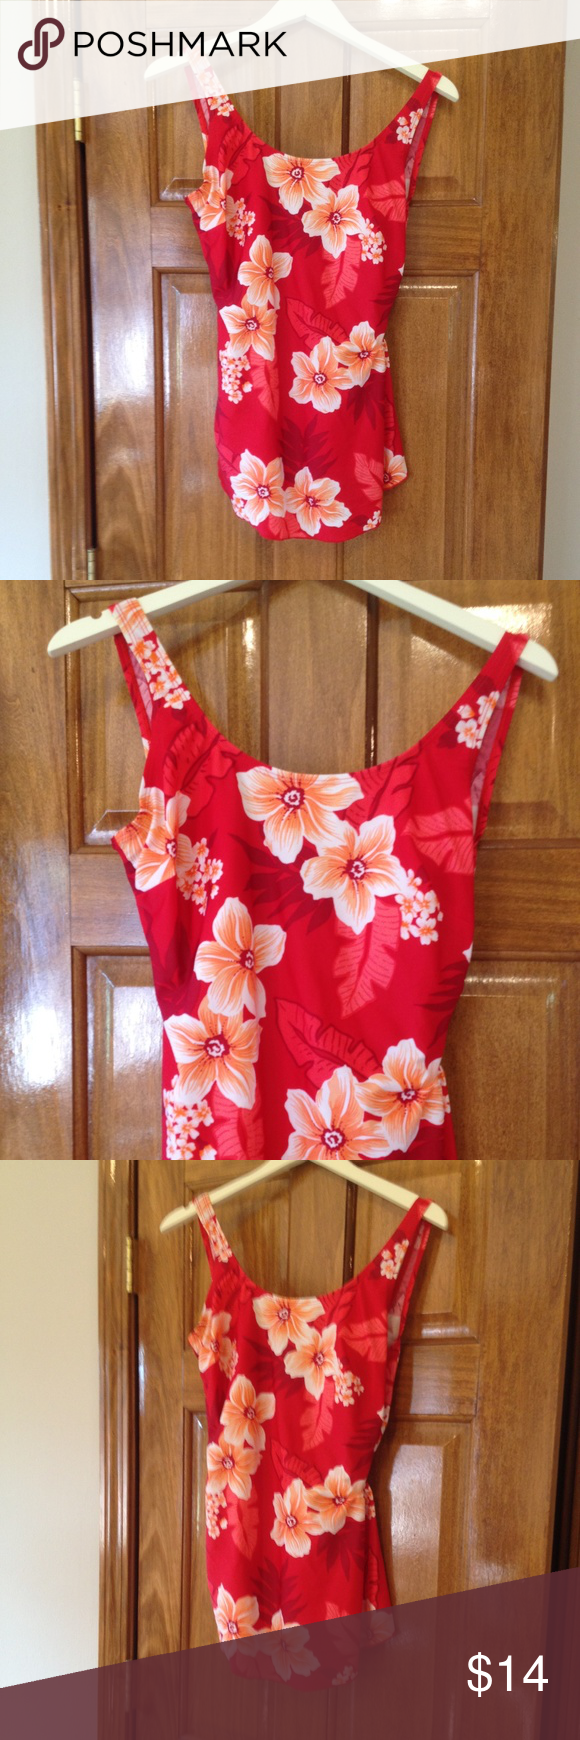 d76c9a1063 Shore Shapes Red Floral One Piece Bathing Suit 14 Shore Shapes Red Floral One  Piece Bathing Suit Swim Suit Size 14 Skirted Front Slight Gathering On side  ...